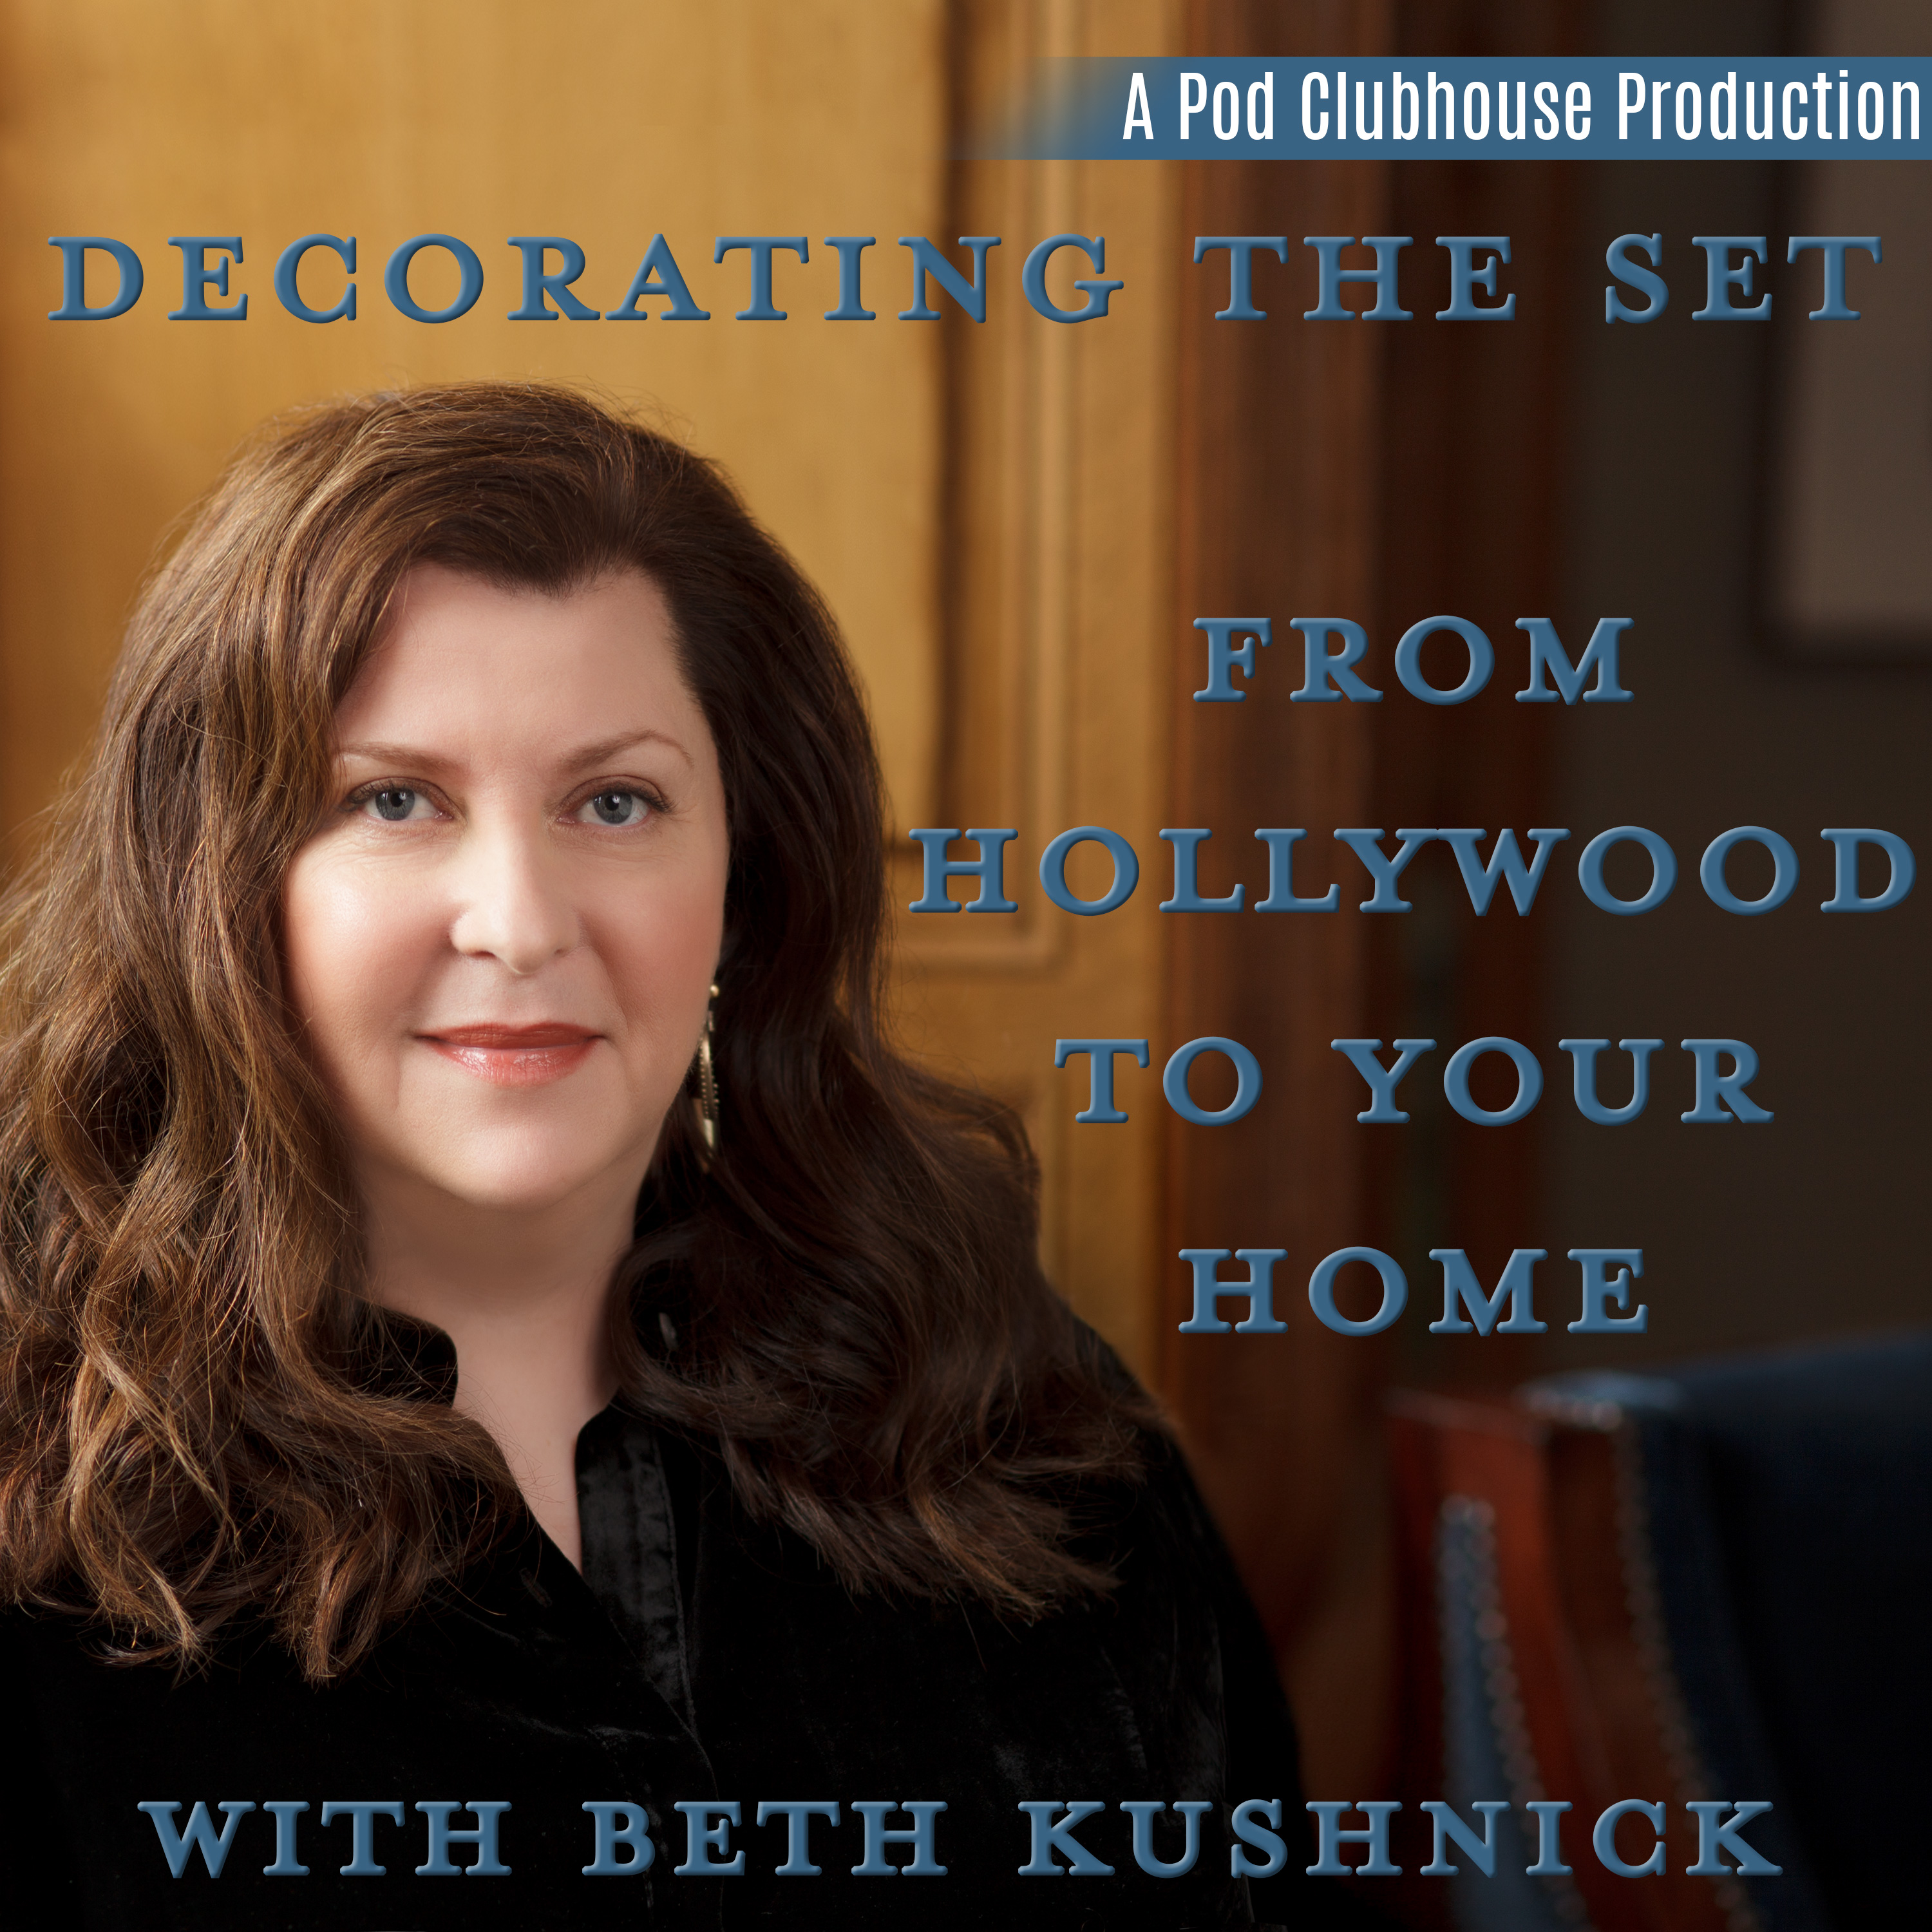 Decorating the Set: From Holly wood to Your Home with Beth Kushnick